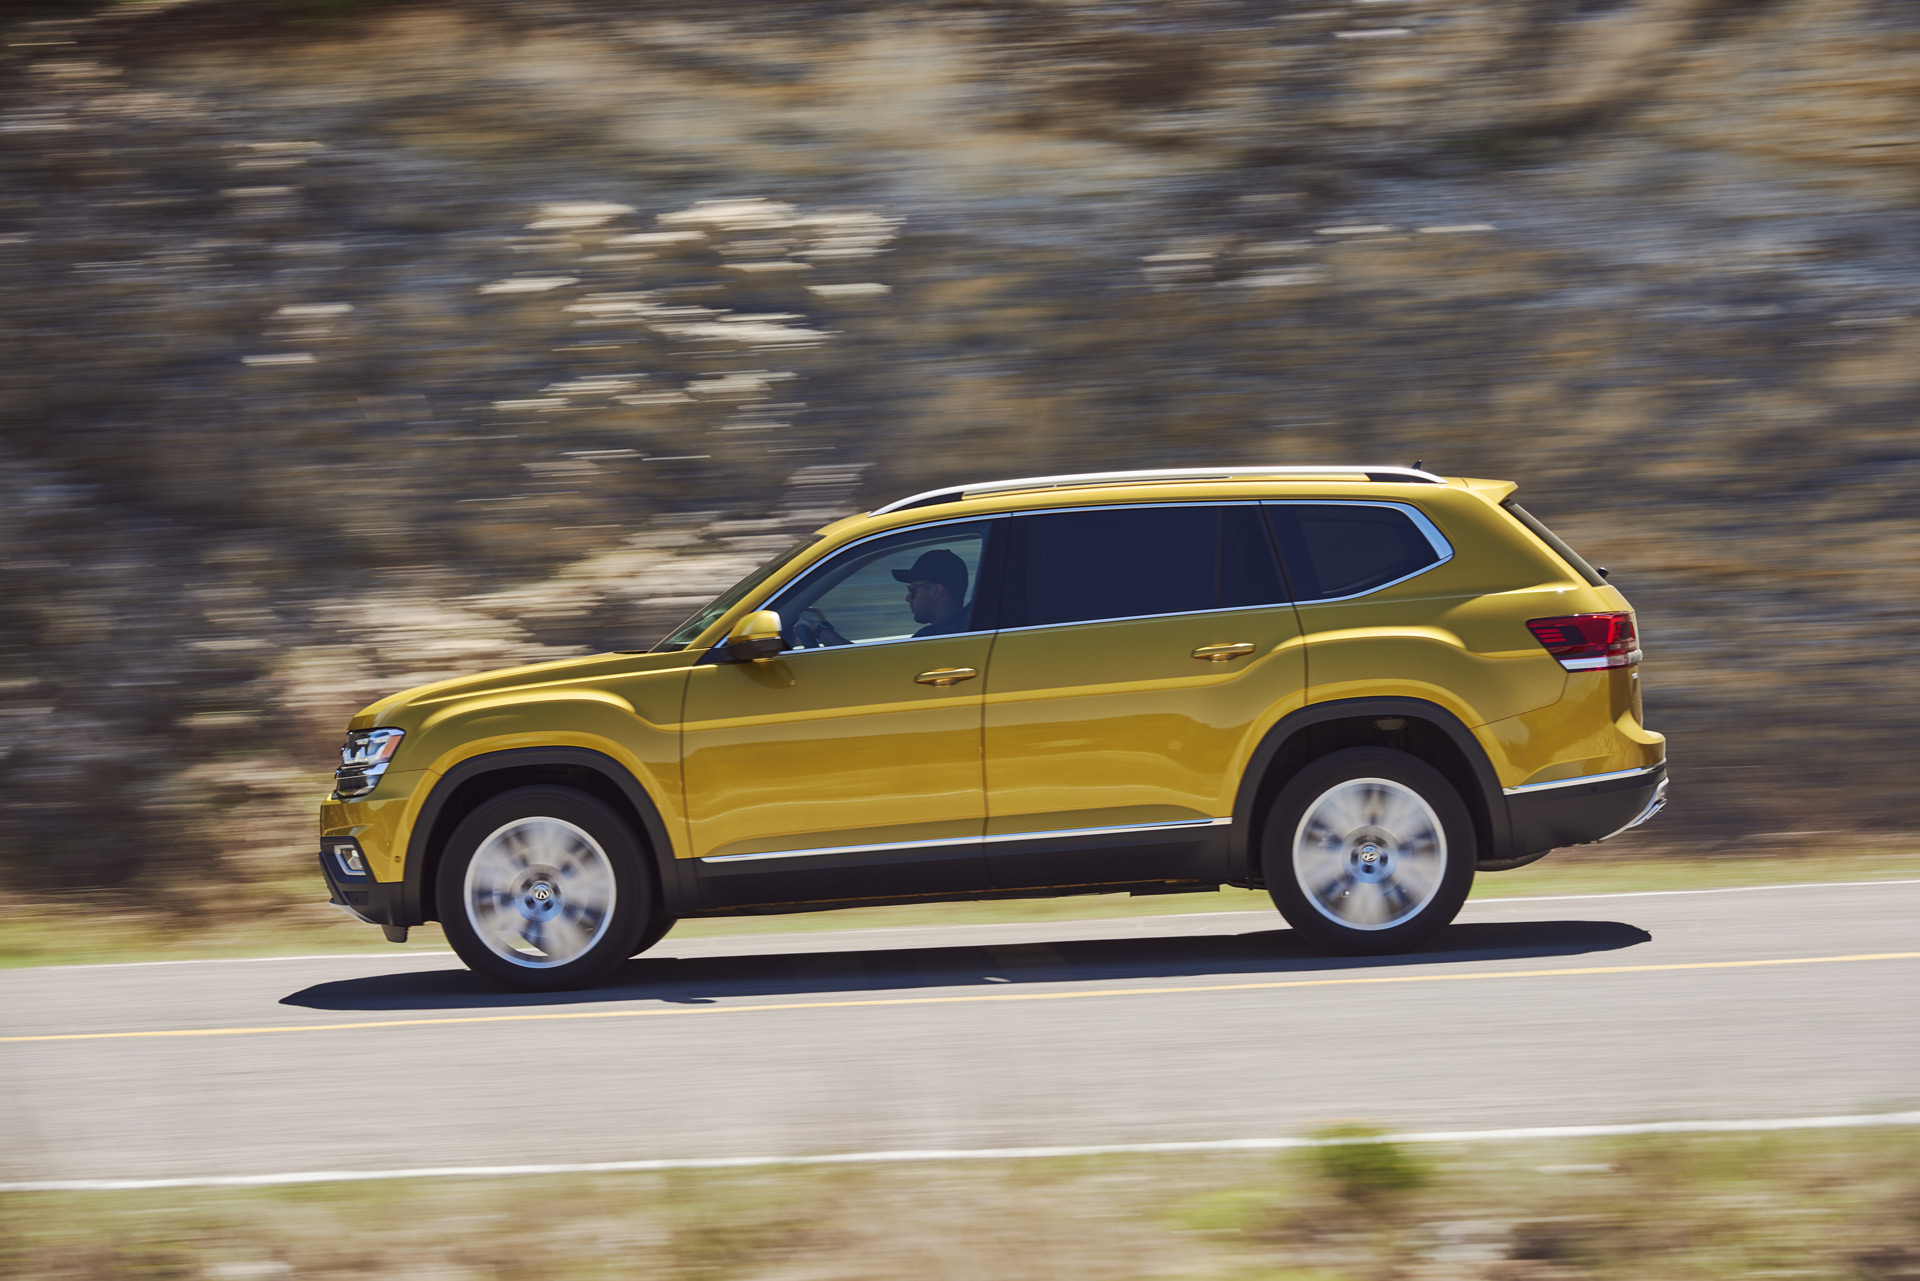 2018 Volkswagen Atlas (VW) Review, Ratings, Specs, Prices, and Photos - The Car Connection